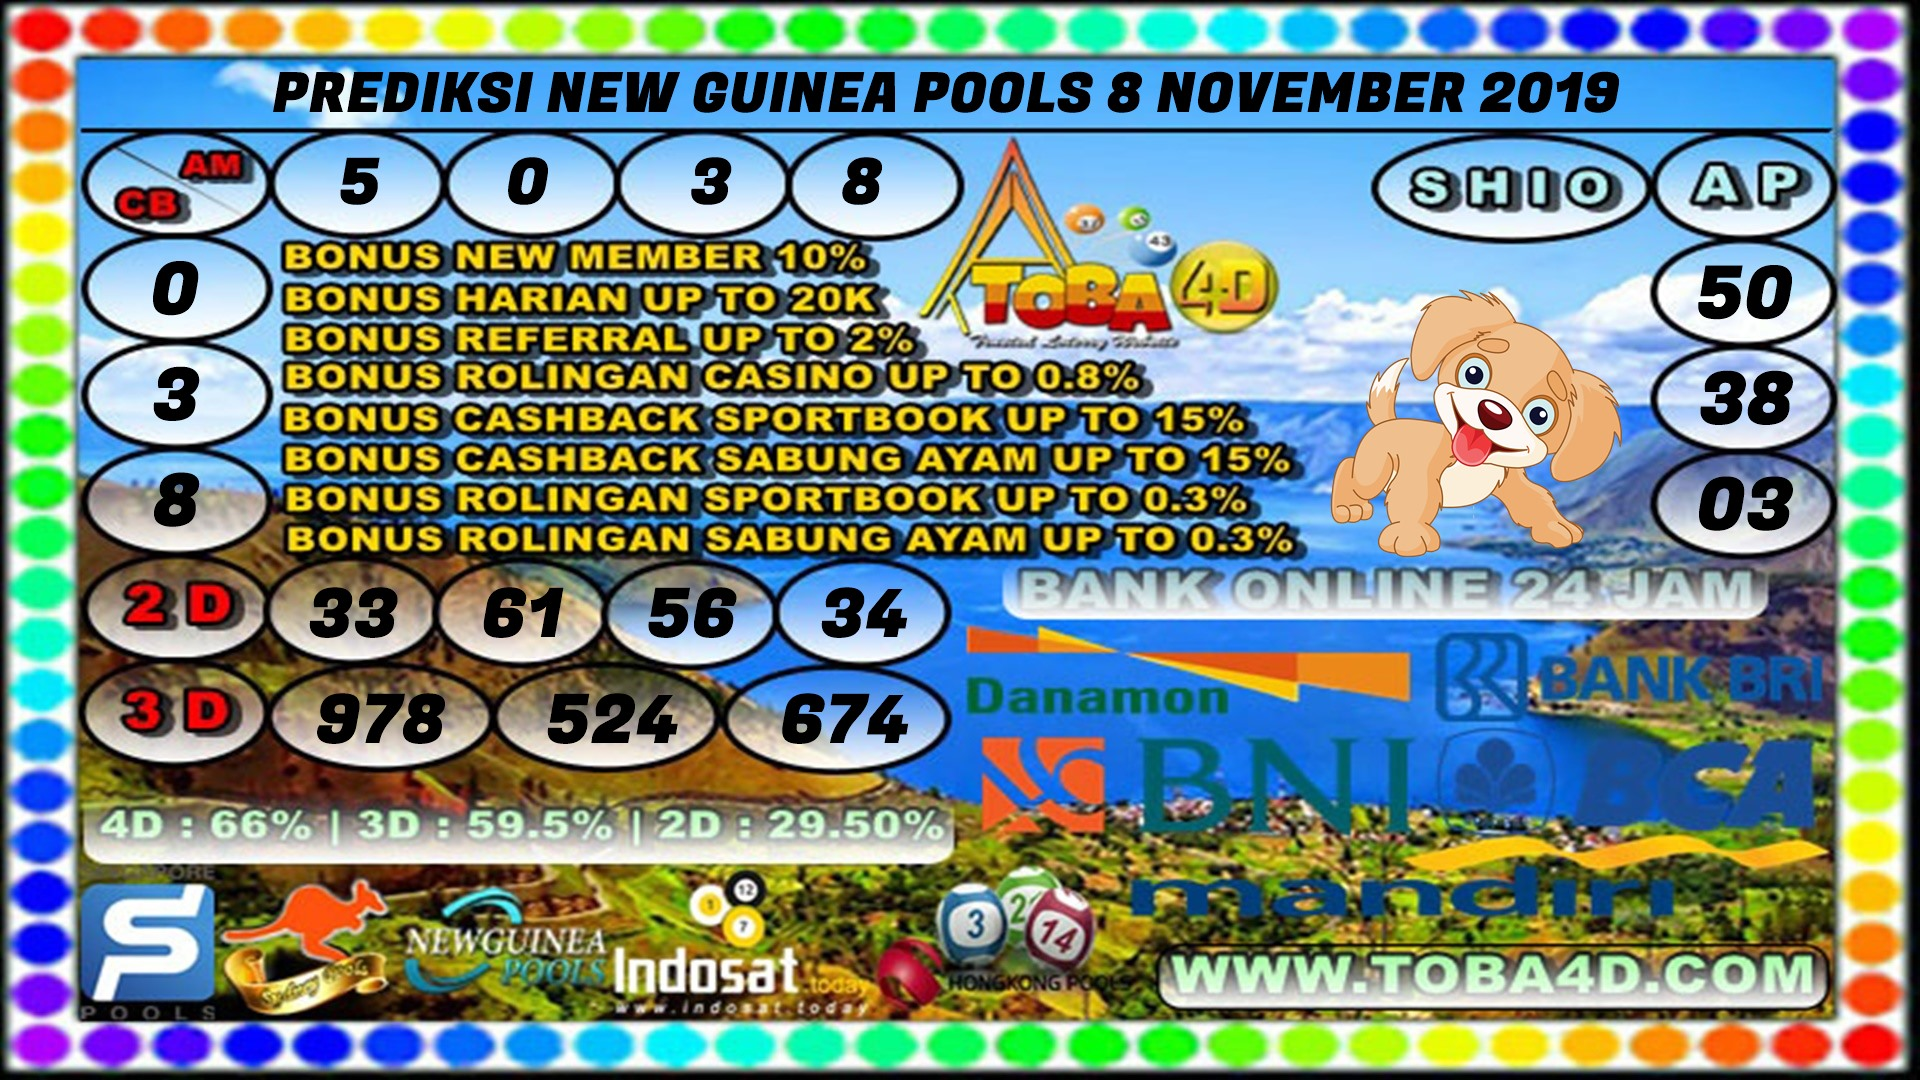 PREDIKSI NEW GUINEA POOLS 8 NOVEMBER 2019